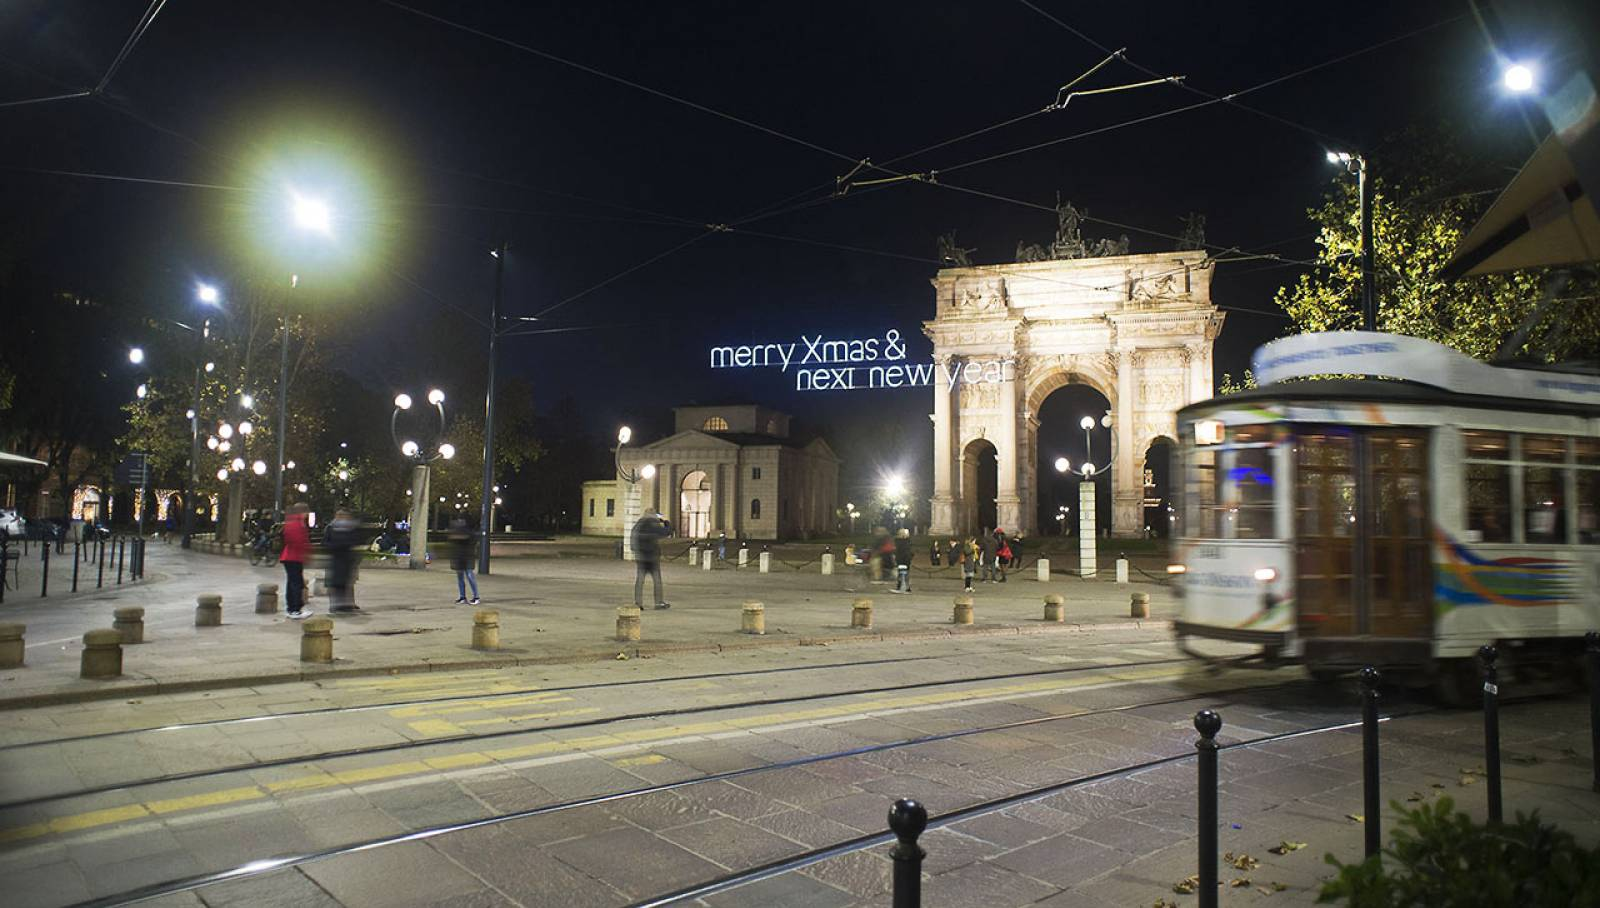 IGPDecaux Christmas lights for Nexi in Milan